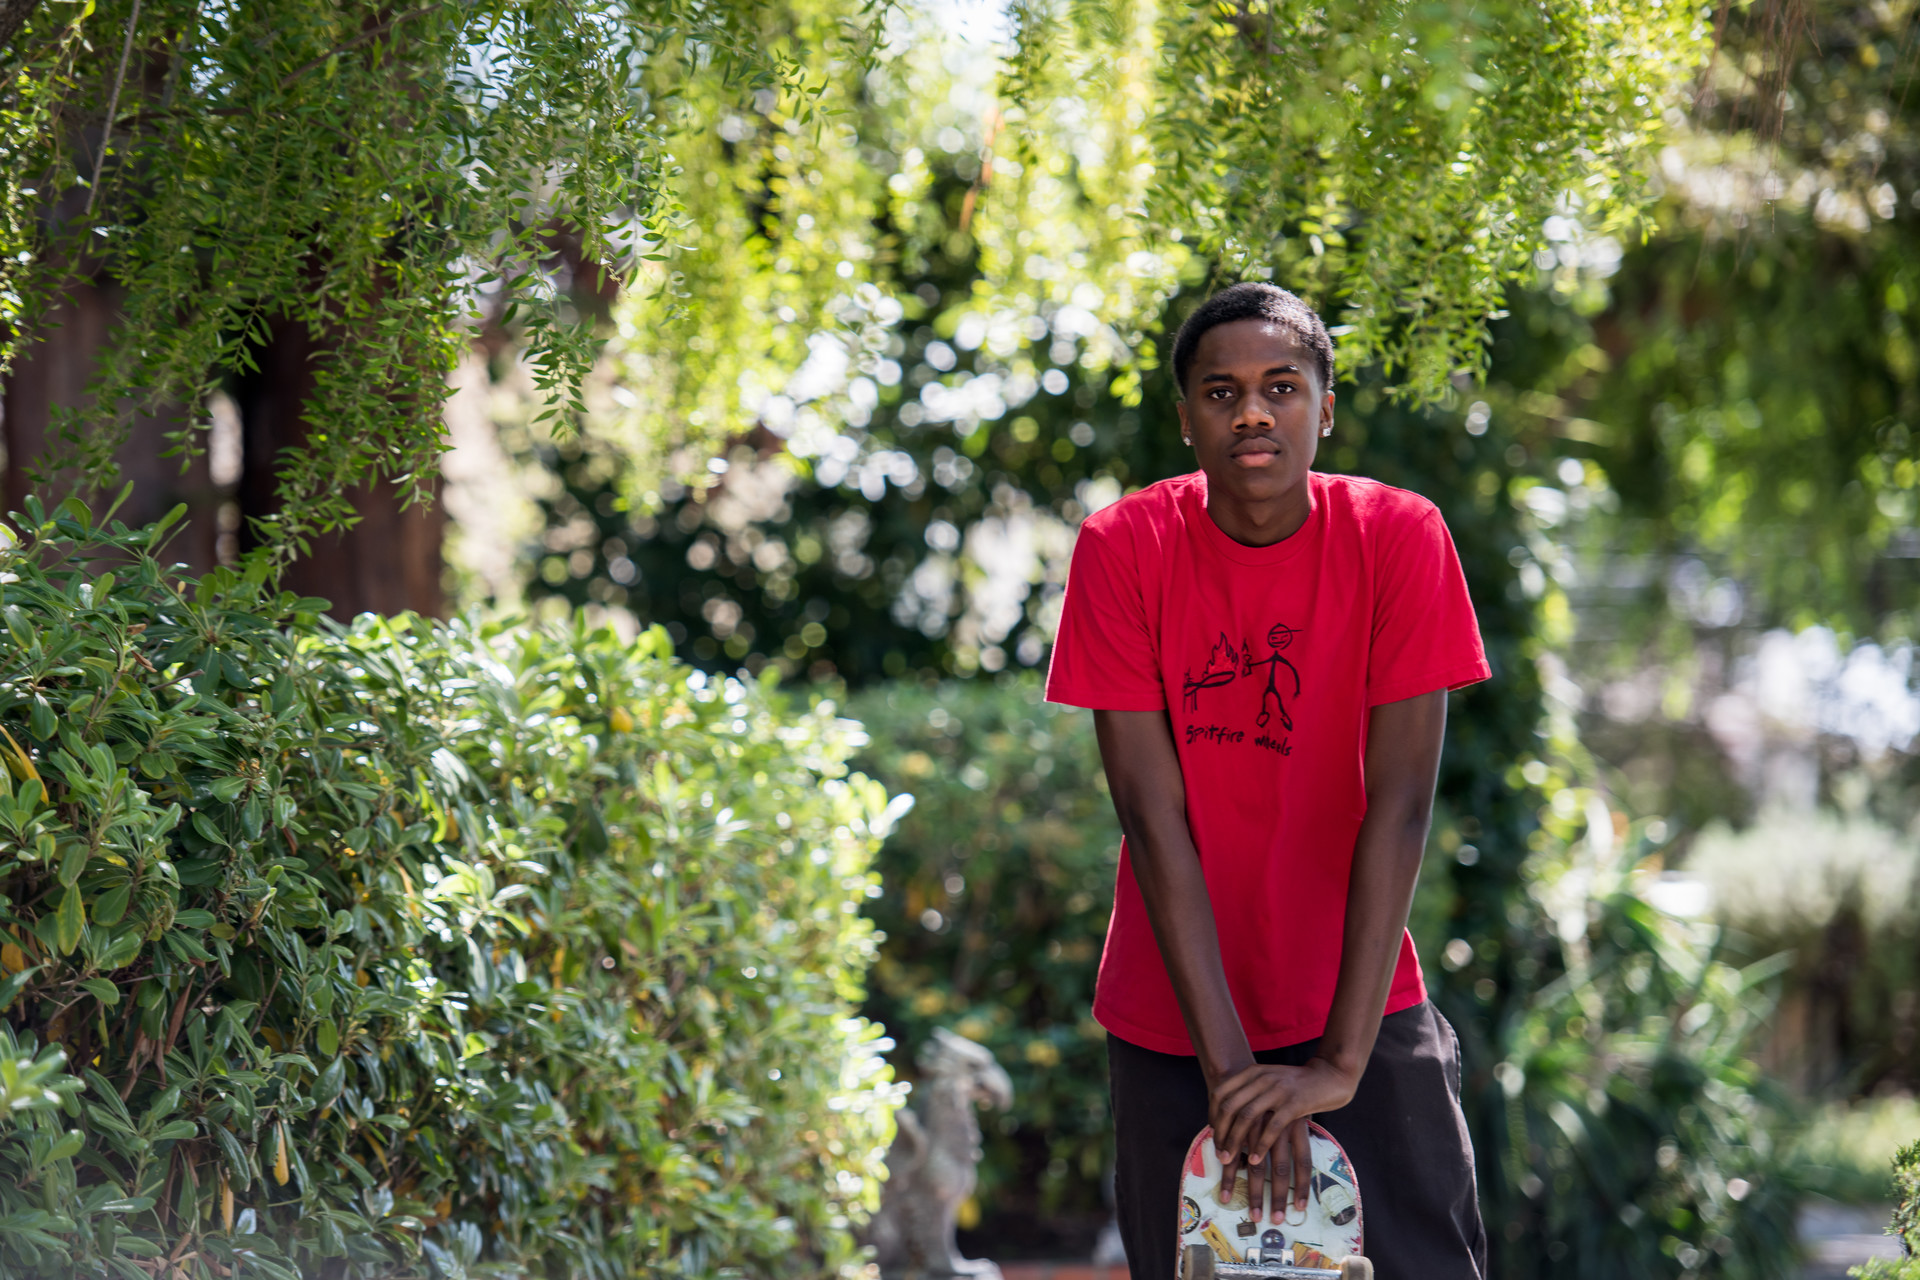 Qadir Scott, a senior at Oakland Technical High school, leans on his skateboard.